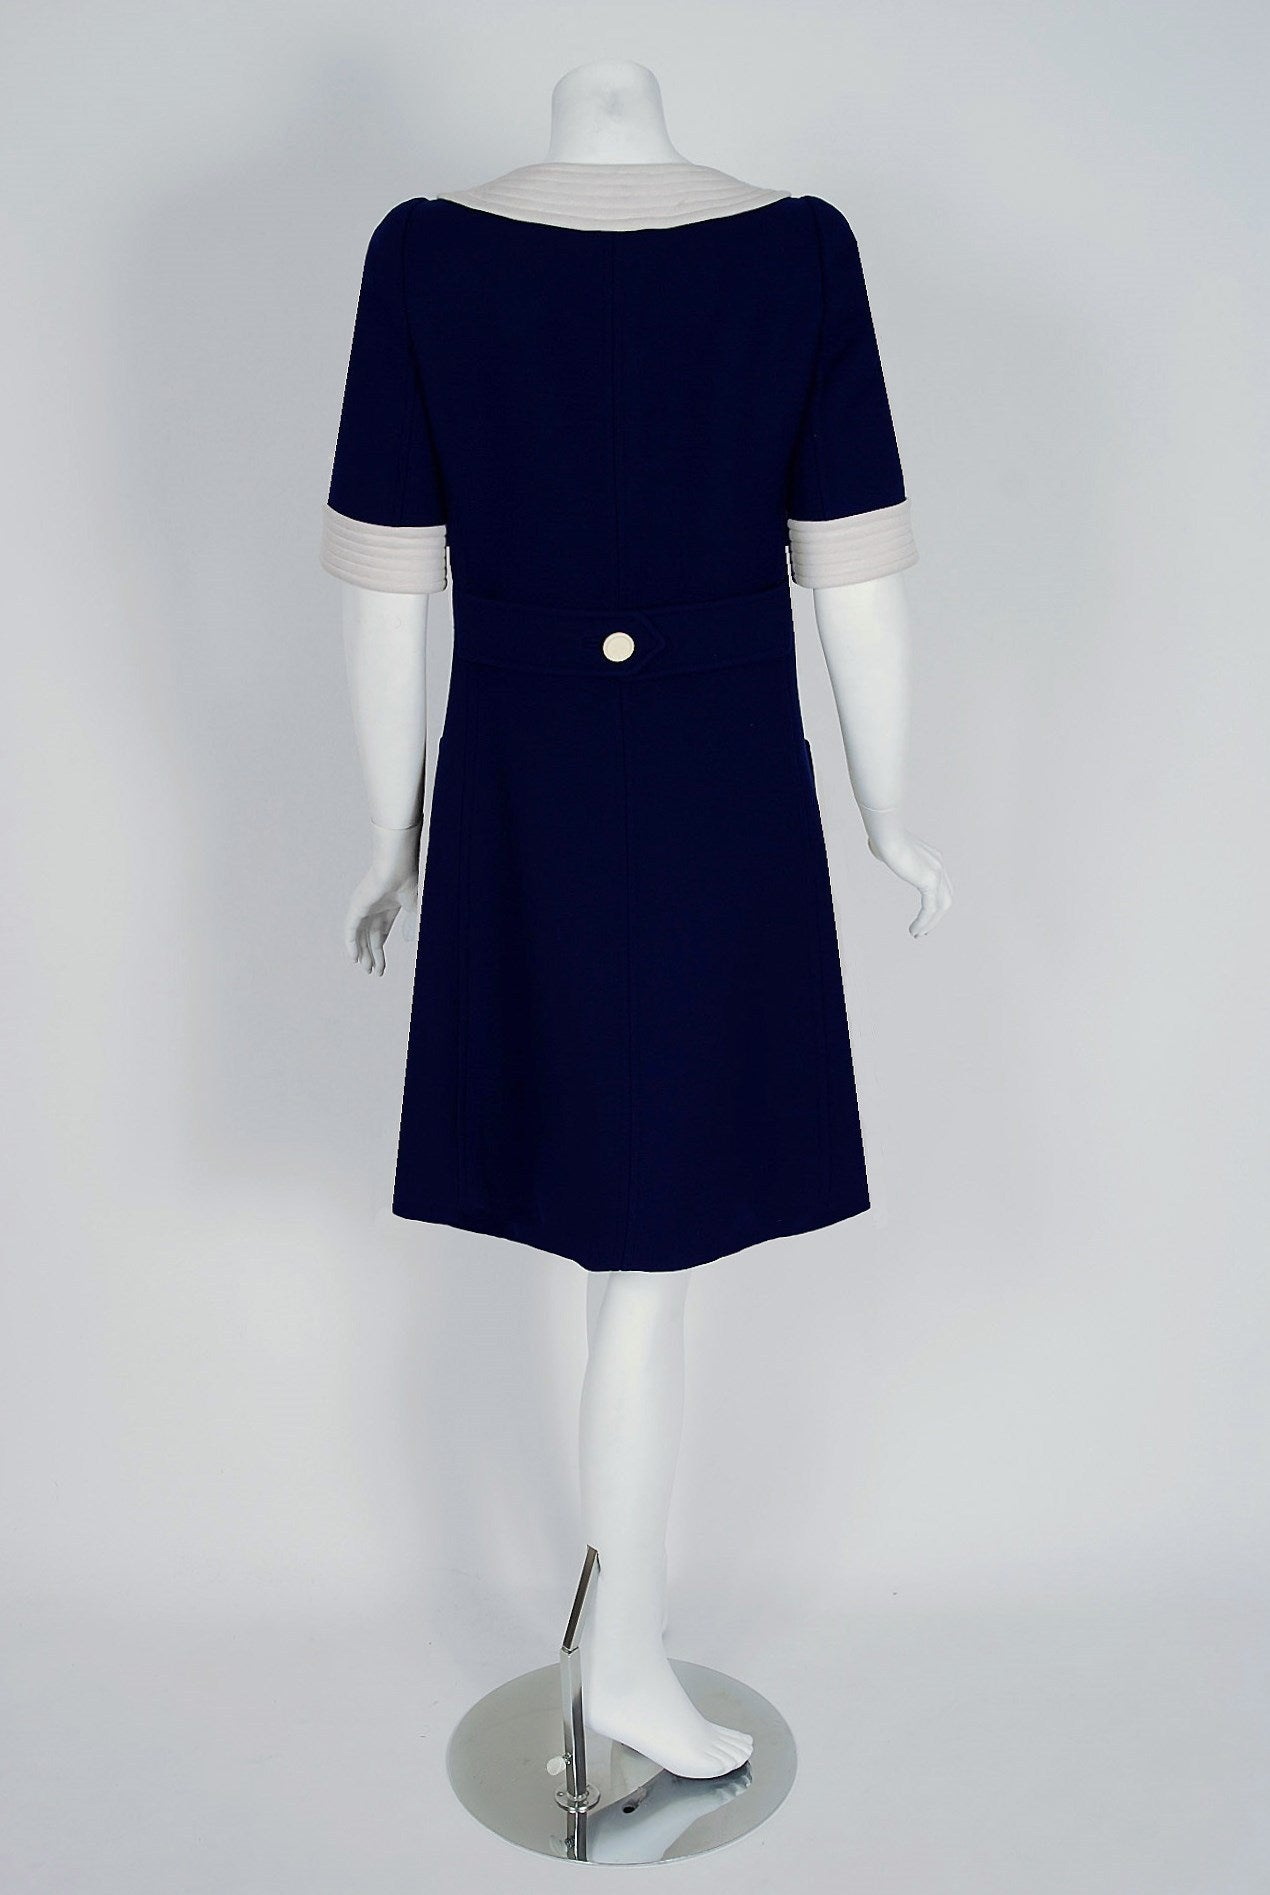 1967 Courreges Couture Navy-Blue & White Wool Block-Color Mod Space-Age Dress 5